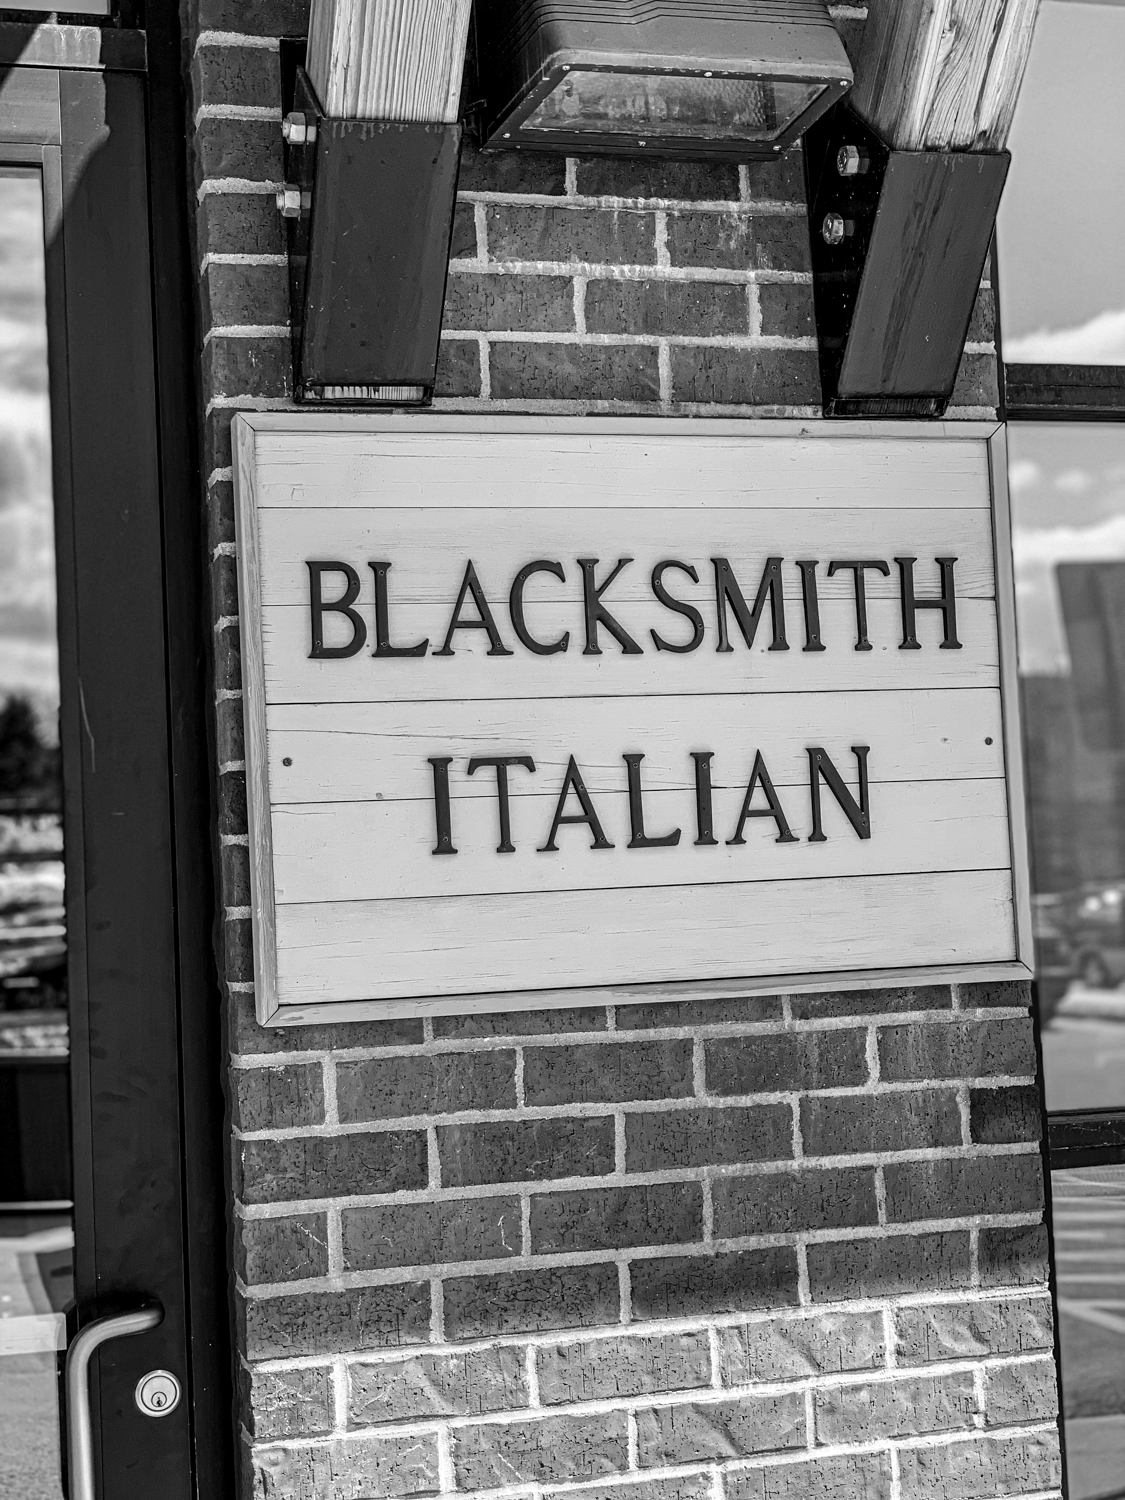 Blacksmith Italian When You Go To Bozeman Montana Savory Travel Adventures The Culinary Travel Network photo by Steven Shomler